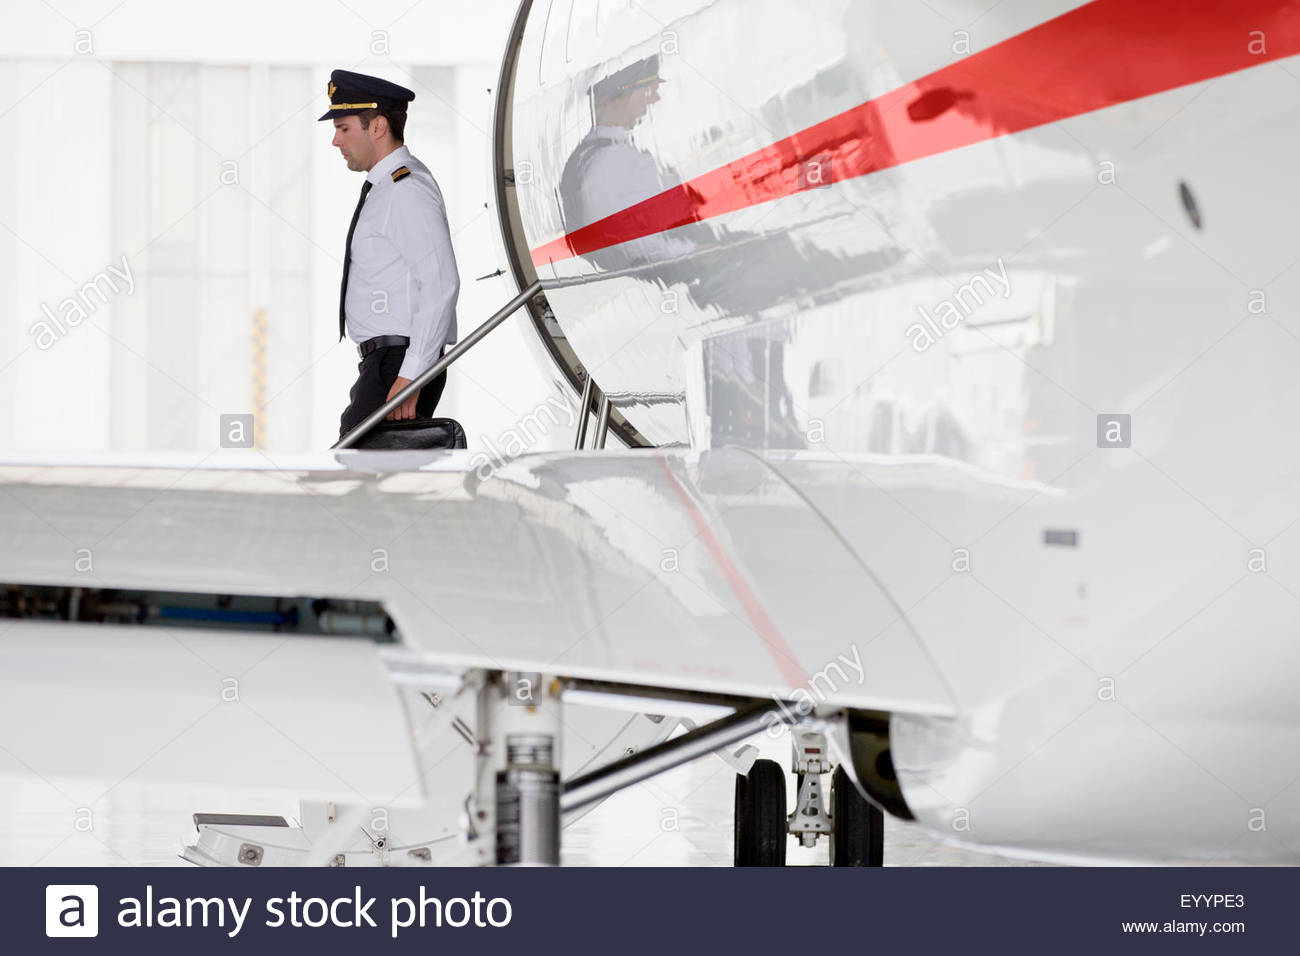 Pilot exiting private jet - Stock Image